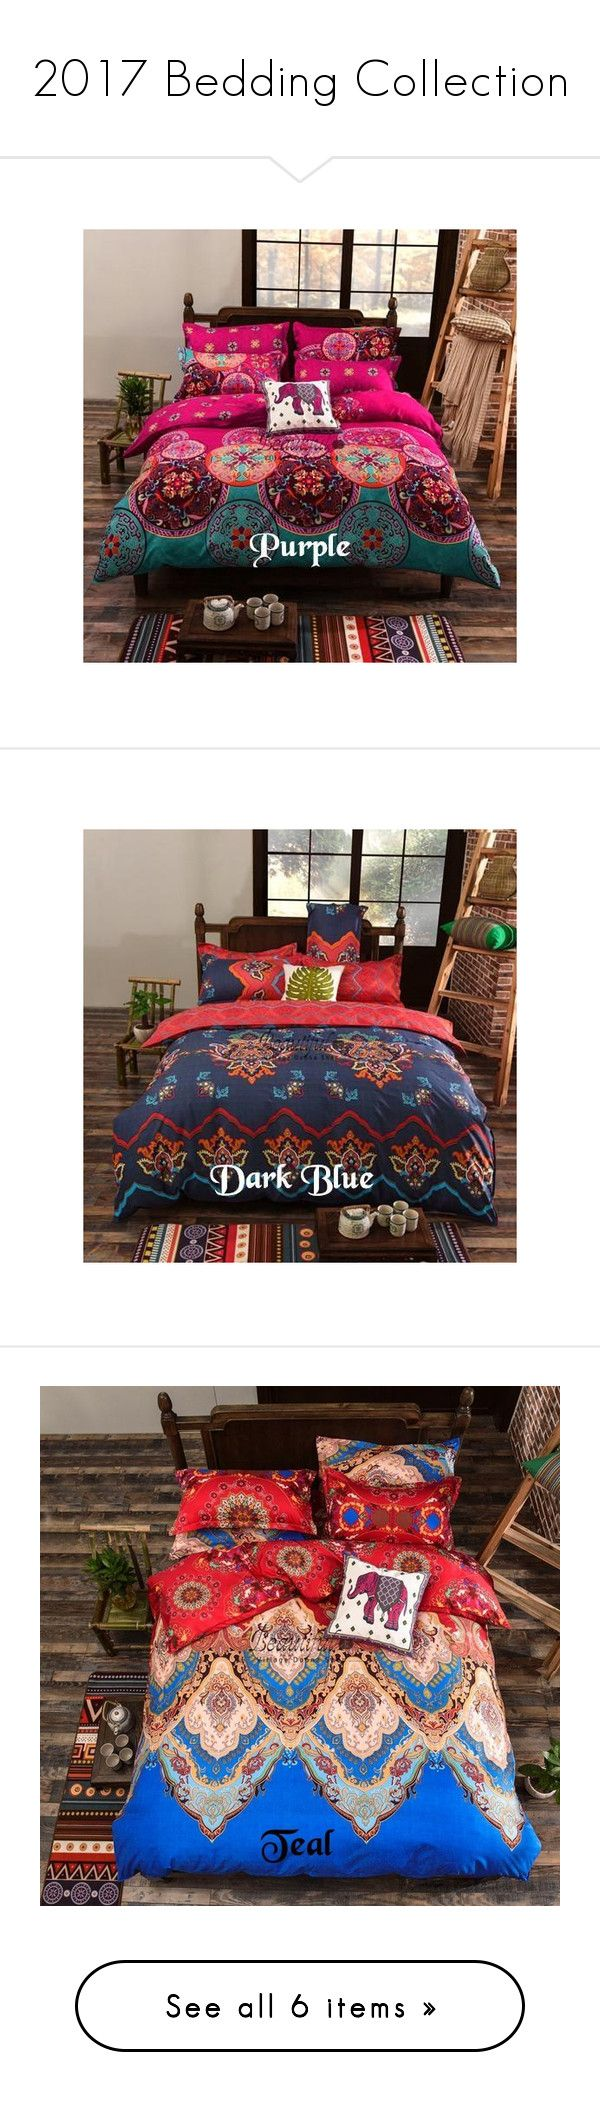 2017 Bedding Collection by vintagecountrycouture31560 on Polyvore featuring home, bed & bath, bedding, quilts, king bedding, king quilt coverlet, king bedding ensembles, king quilt sets, cotton bedding and king size bed sets